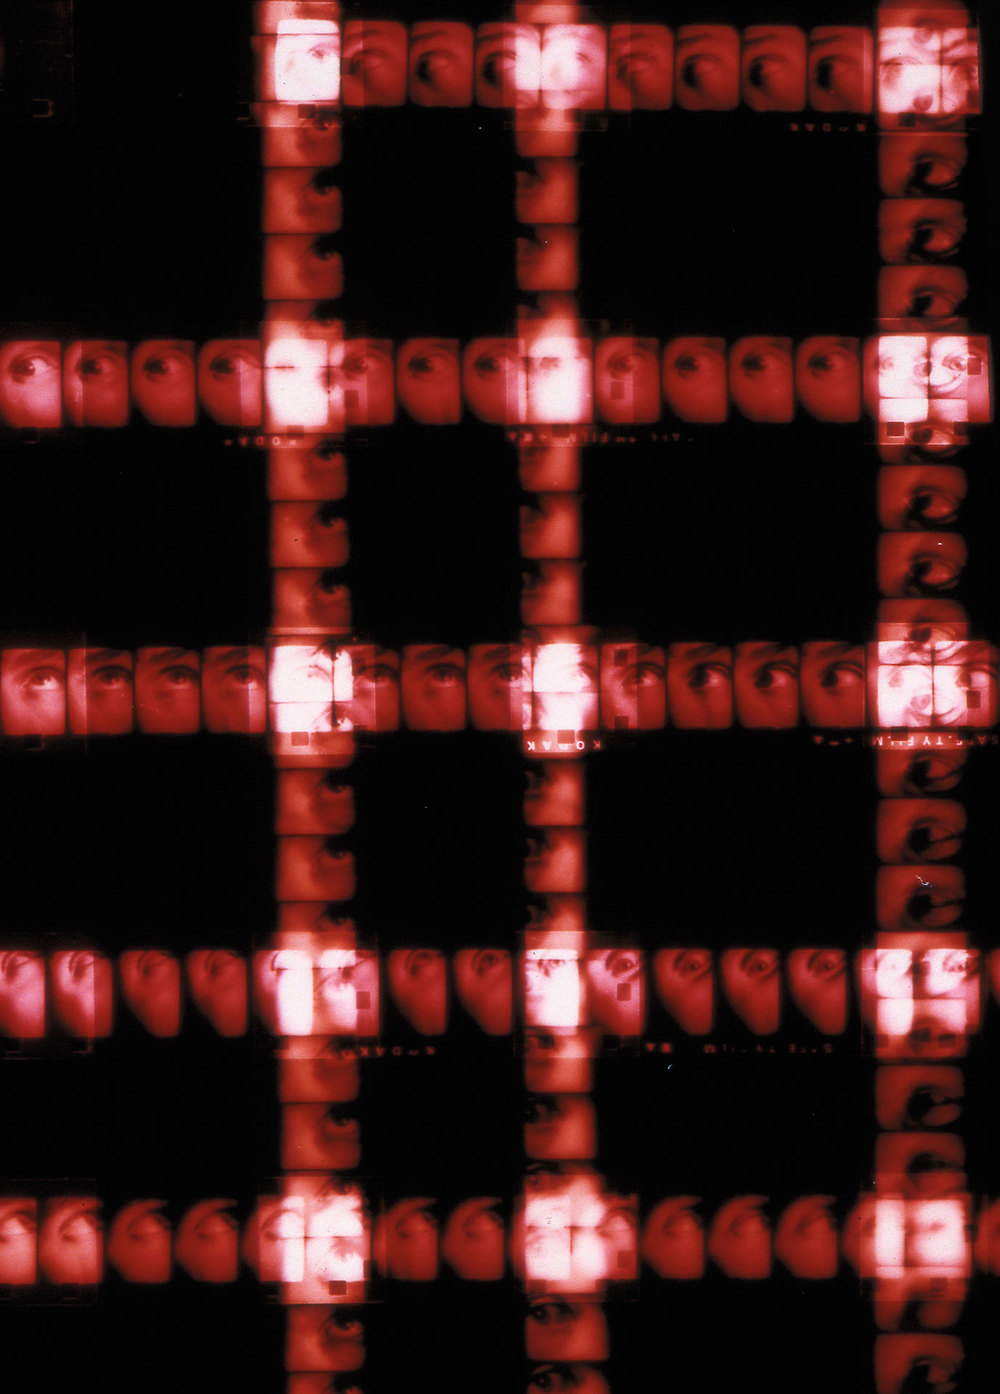 Plaid 7 (red paranoia)